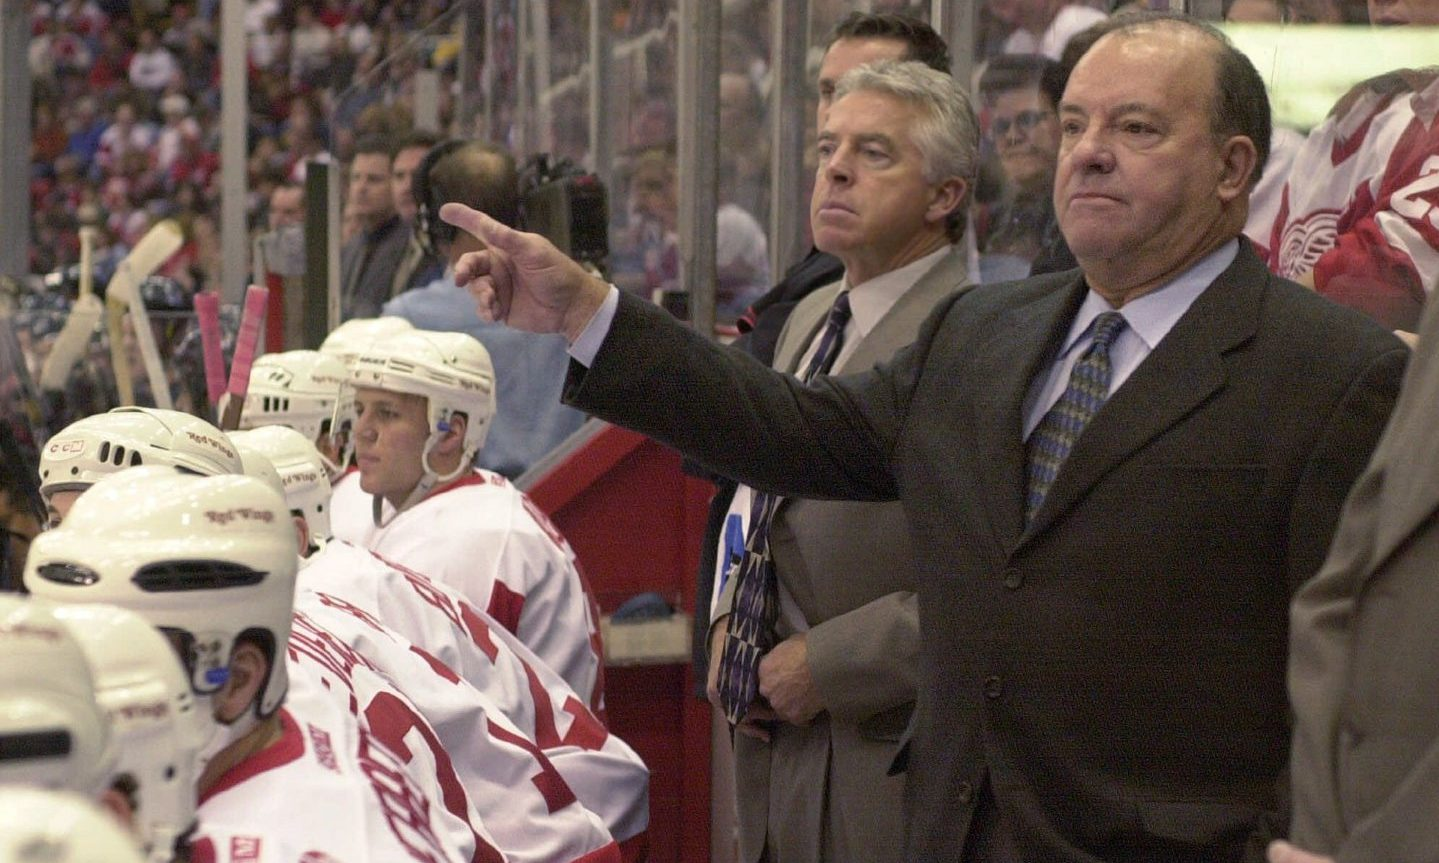 Scotty Bowman, right, gives his team directions during a game against the Vancouver Canucks, at Joe Louis Arena in Detroit. The game was Bowman's 2,000th as an NHL coach.